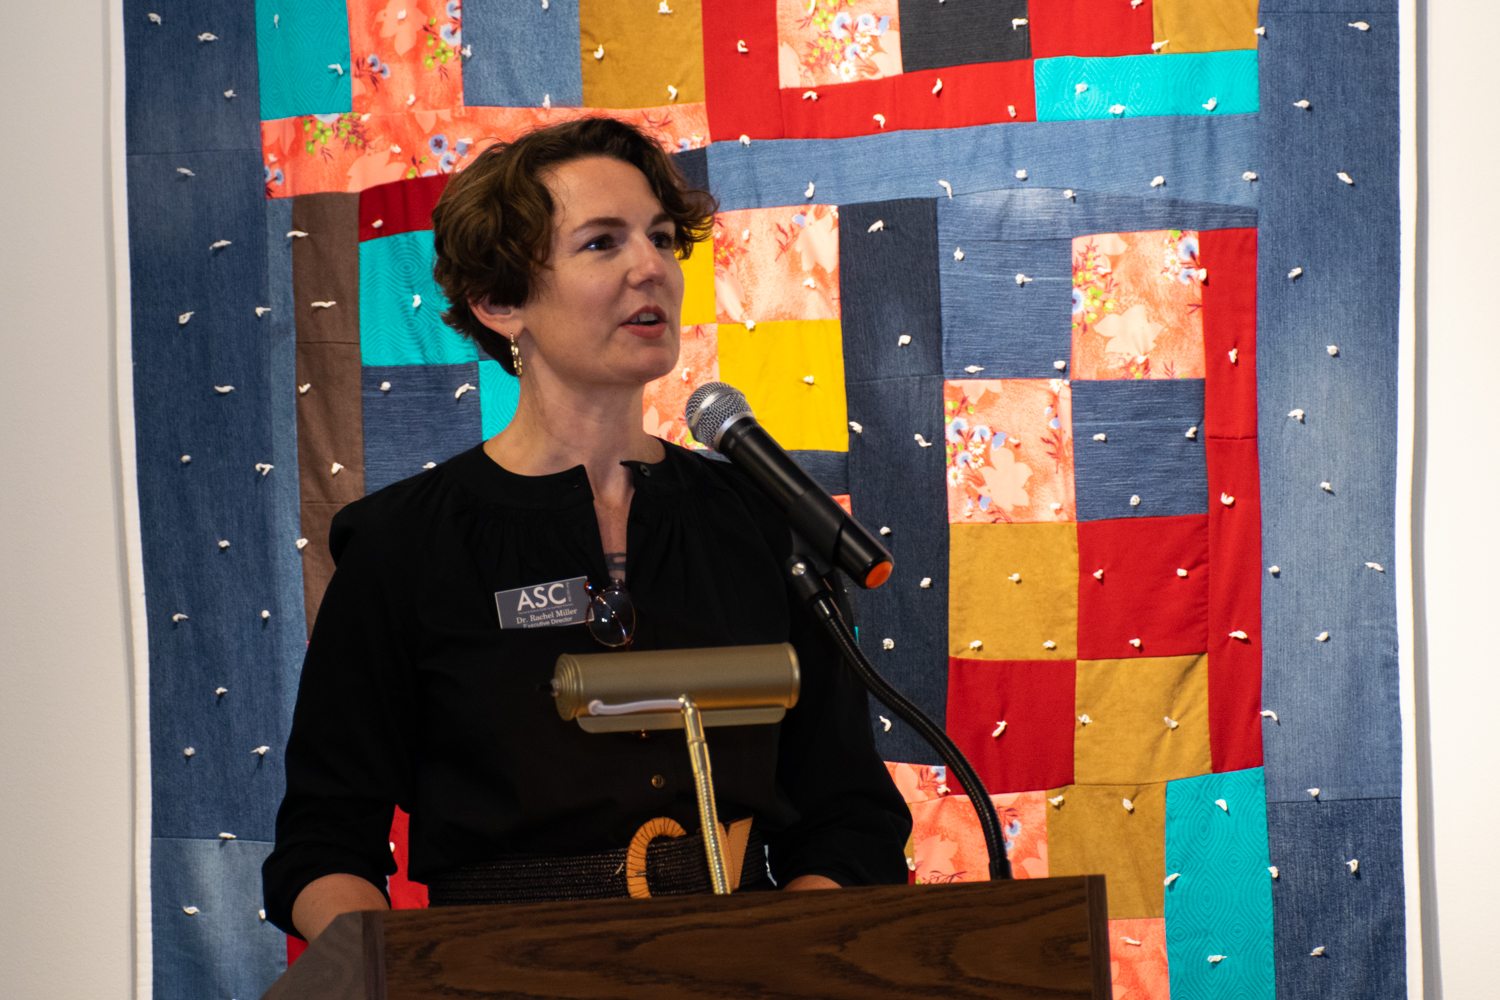 Eviction Quilts reception 2019June27 72dpi-0517.jpg